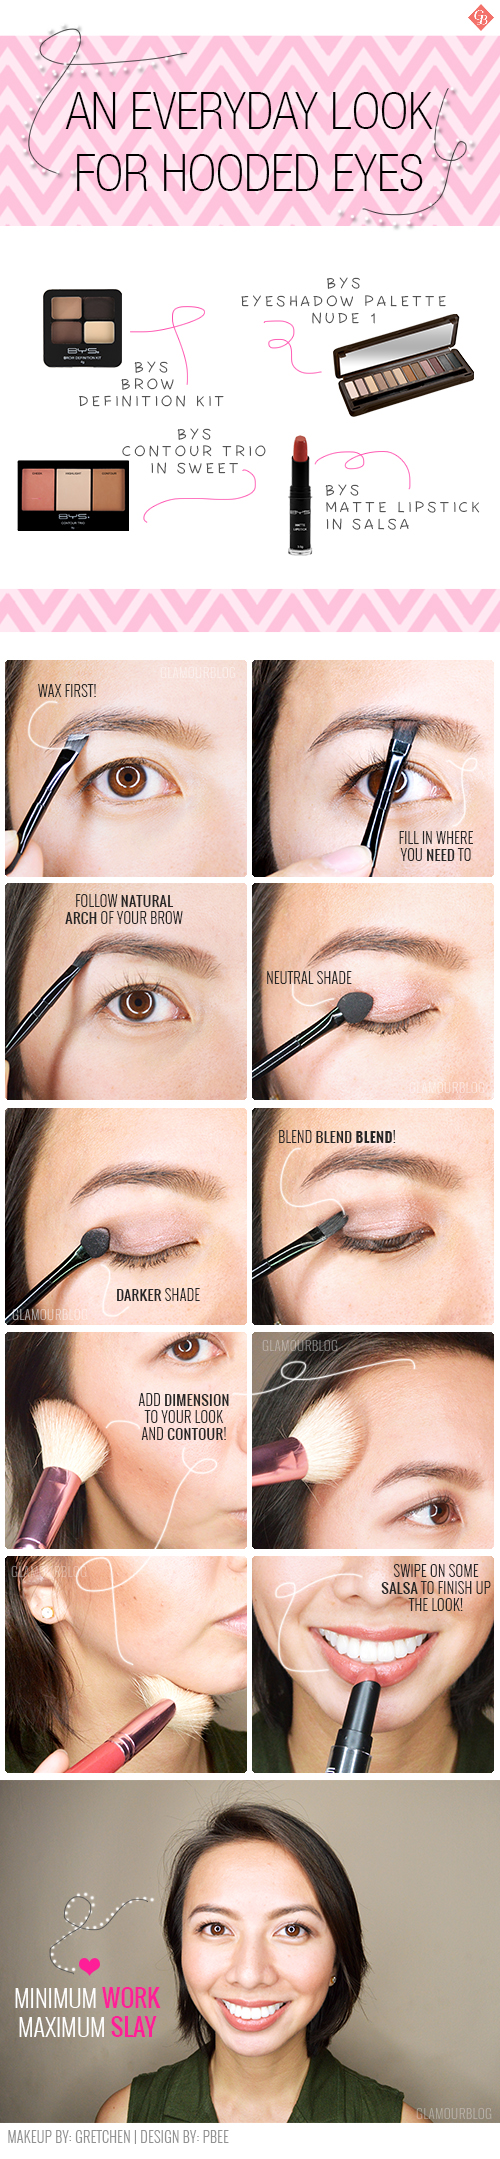 An Everyday Makeup Tutorial For Hooded Eyes